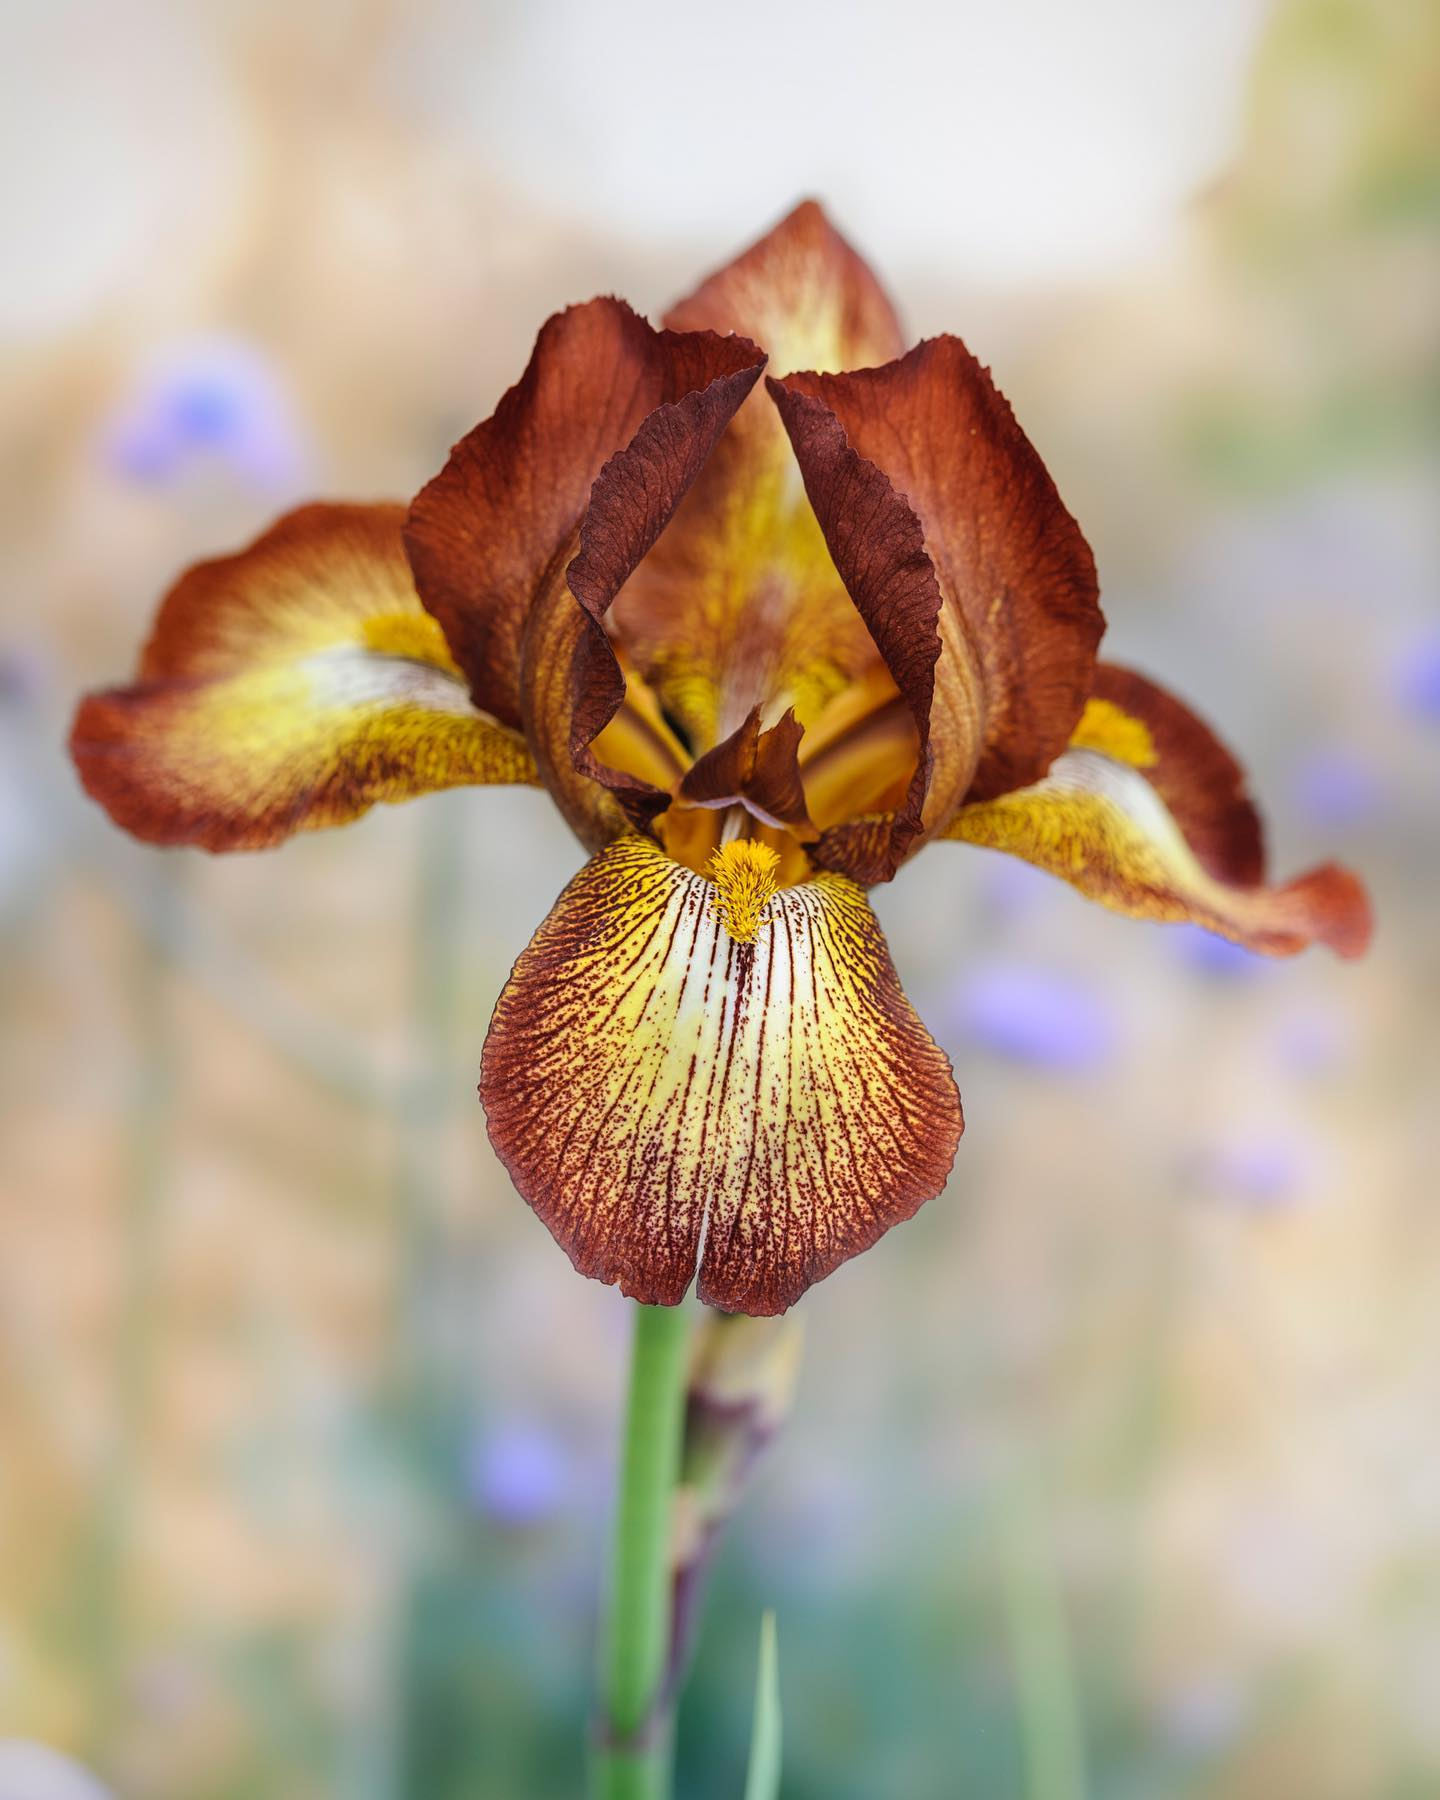 Iris 'Kent Pride' having its moment in the garden today. This is one from my good friends and wonderful local nursery @middlecombenursery #middlecombenursery #gardenphotography #gardenphotographer #iris #beardediris #iriskentpride #nikonphotography #nikon #nikonphoto